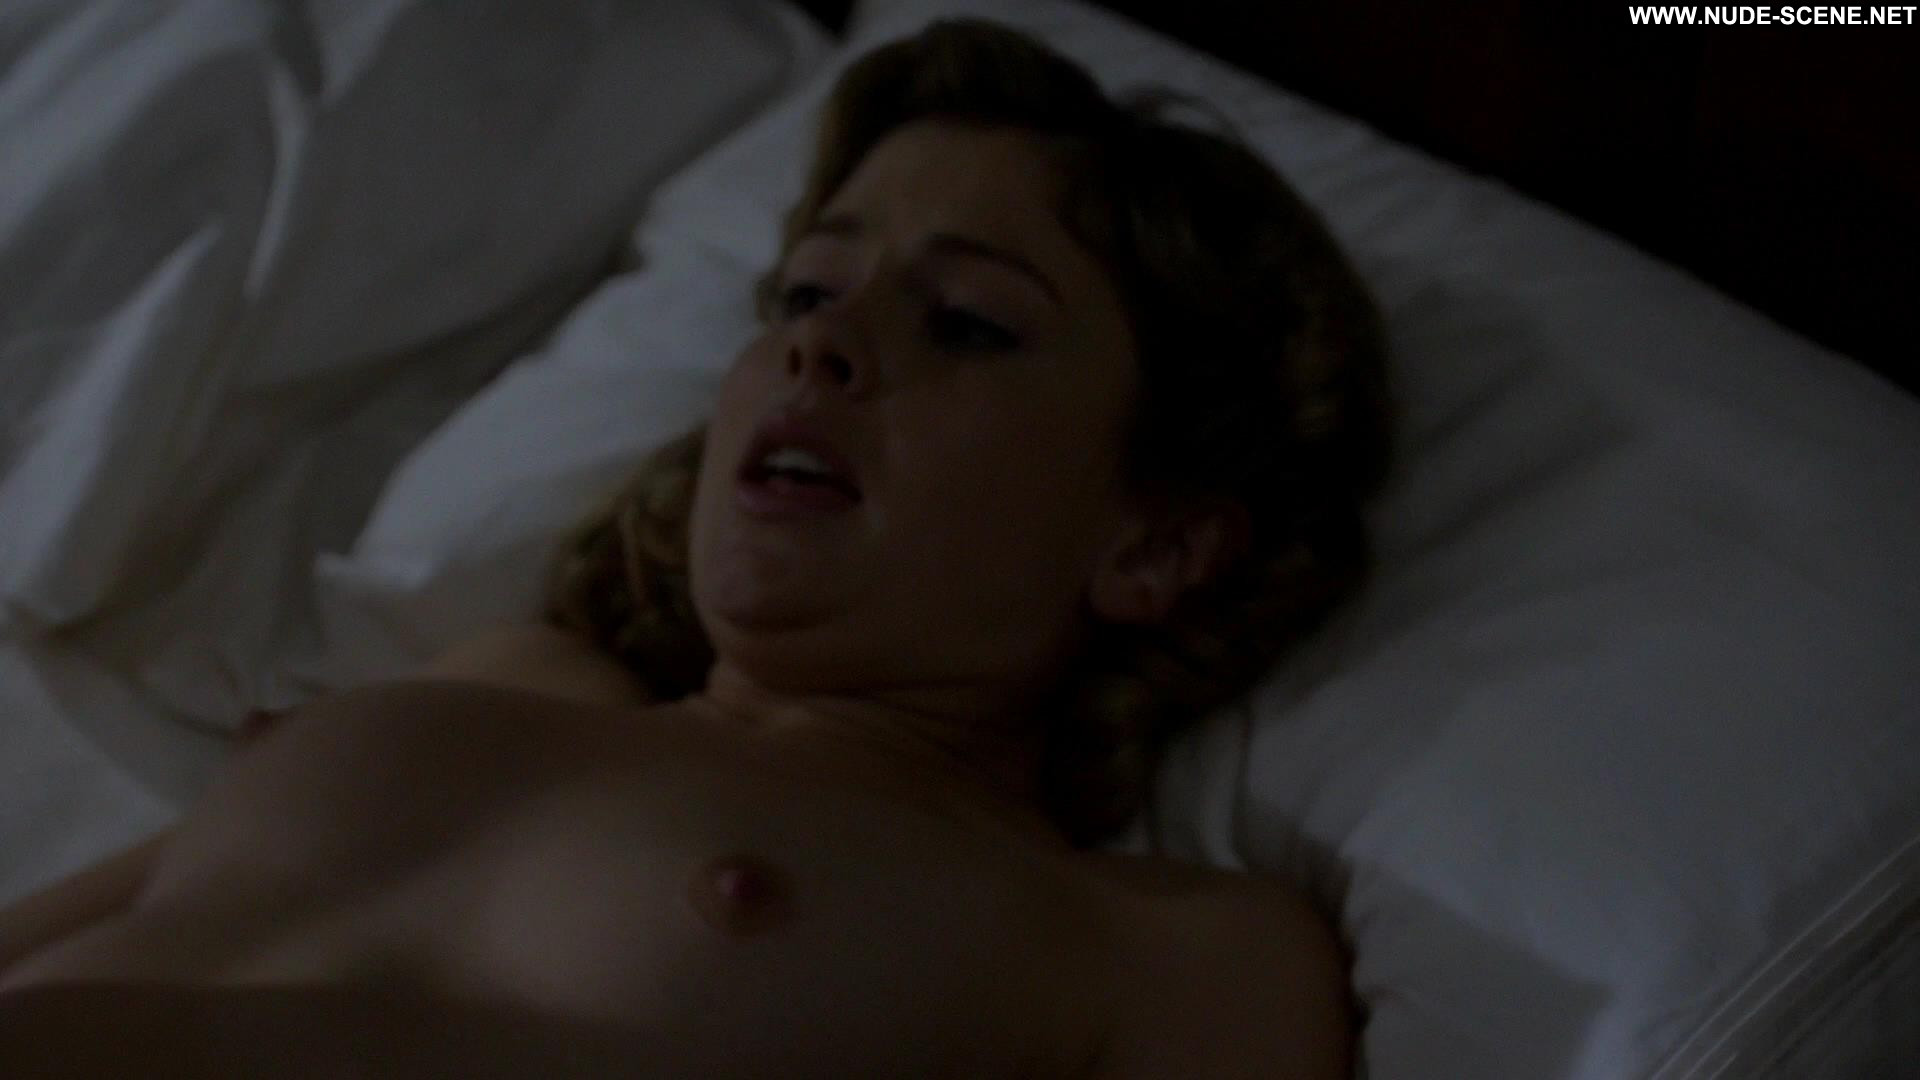 Rose mciver nude sex scene in blinder movie